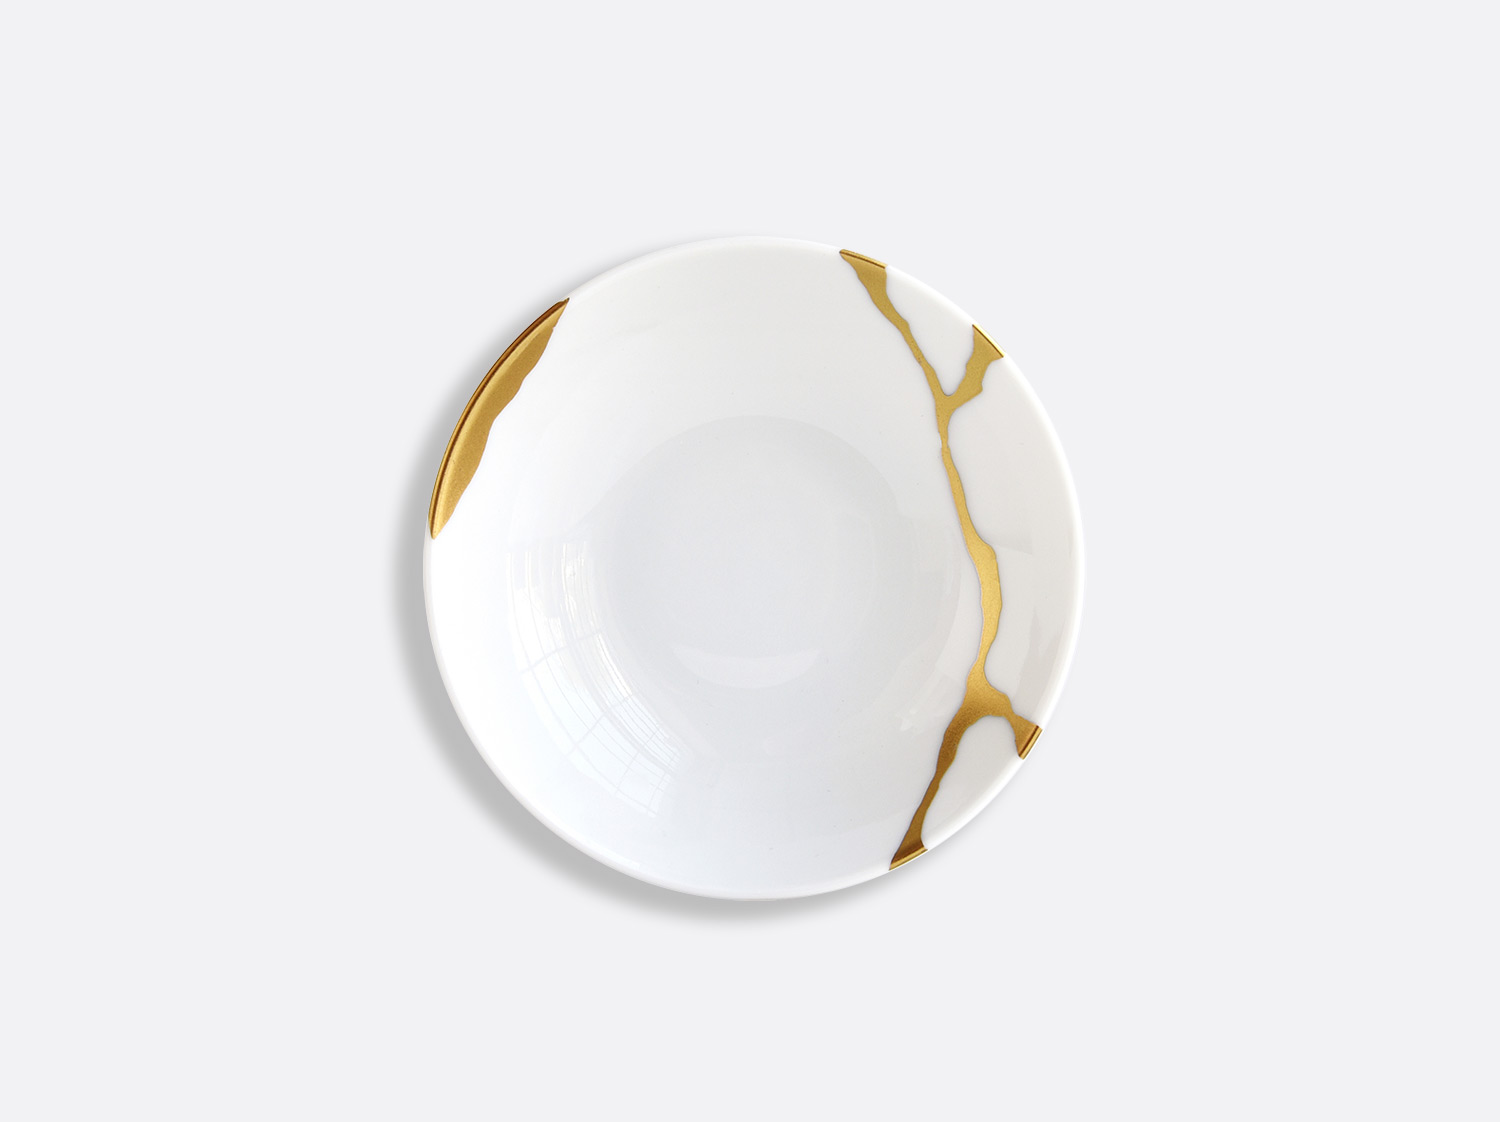 Coupelle 10 cm en porcelaine de la collection Kintsugi Bernardaud